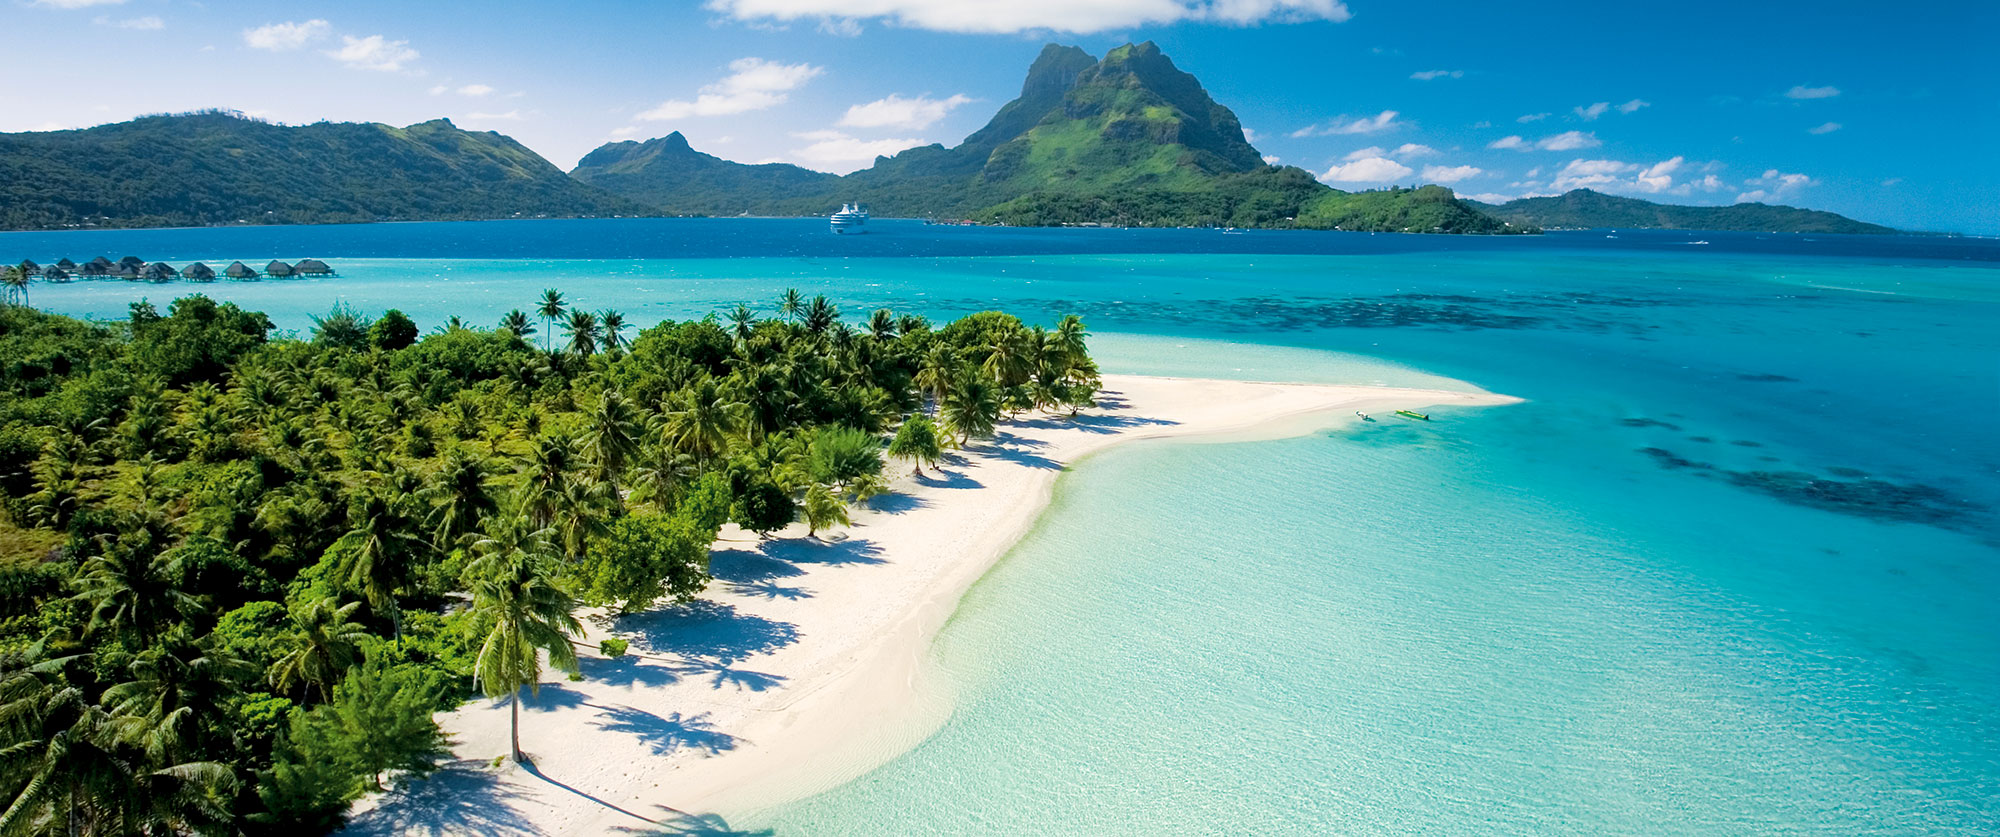 Tahiti Bora Bora Cruise Vacation